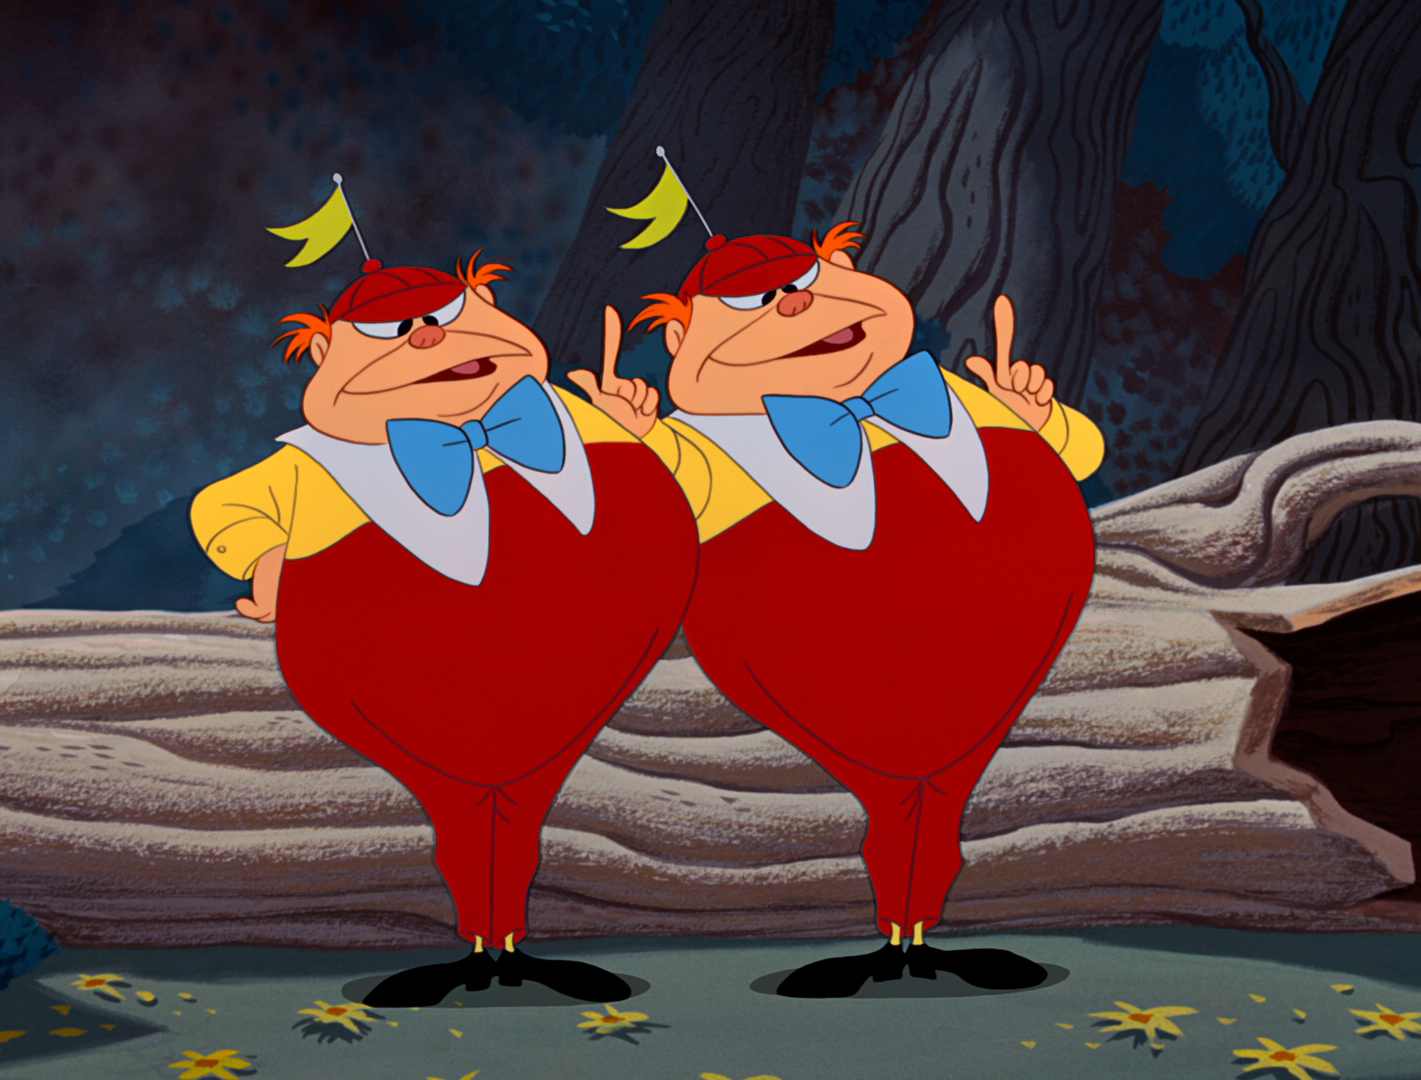 Alice_in_Wonderland_1951_Tweedledum_and_Tweedledee.png